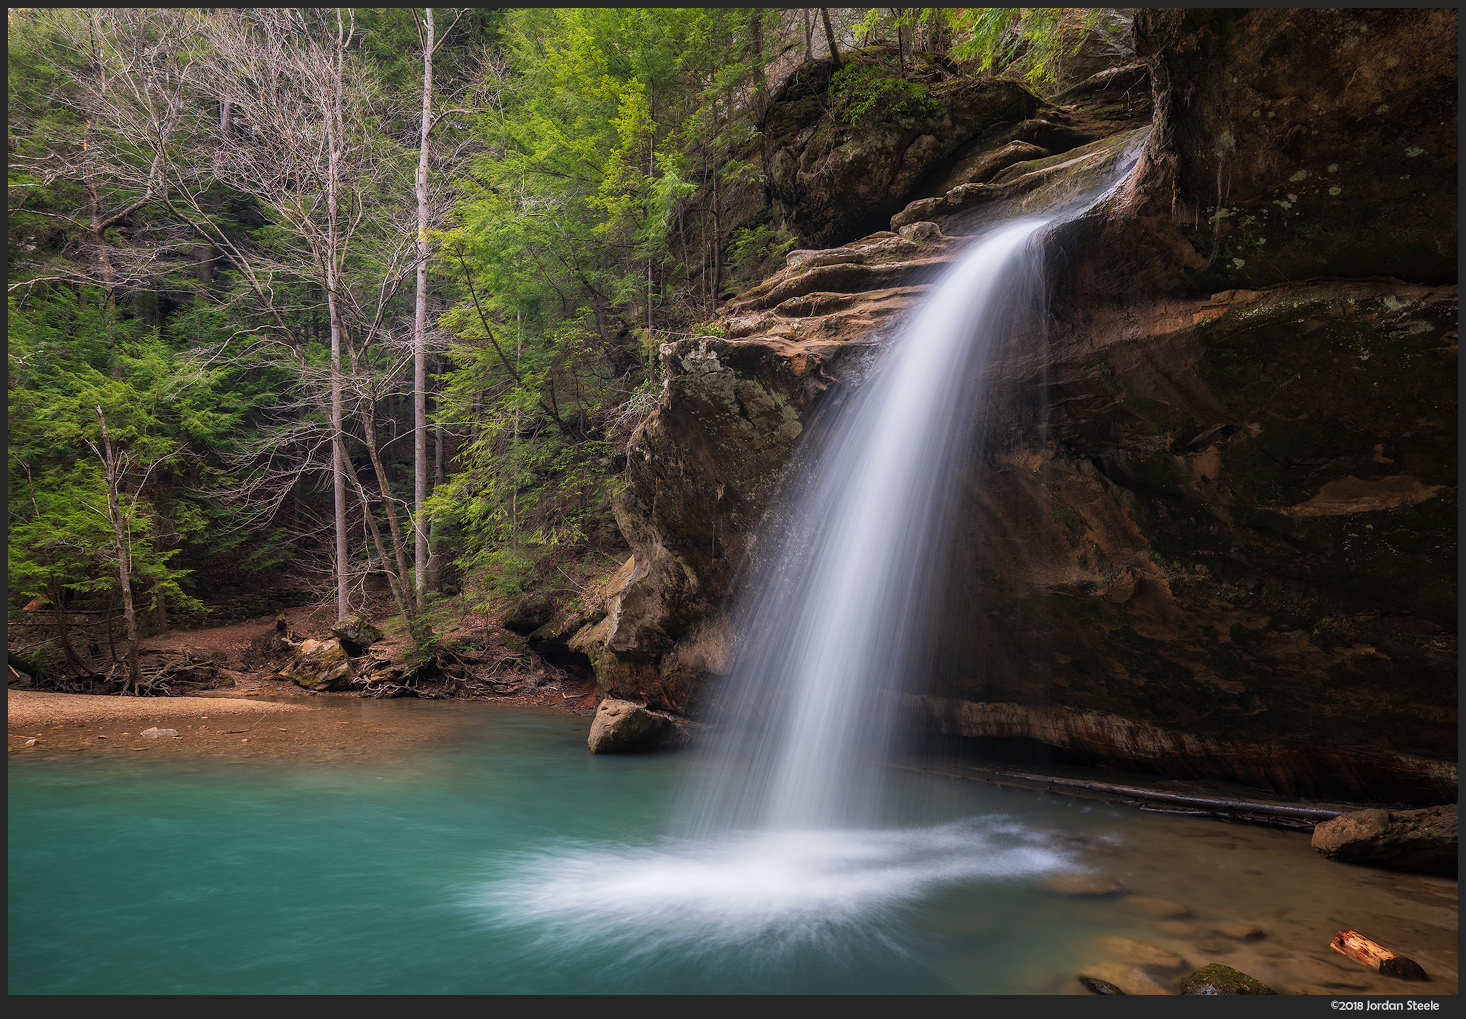 Lower Falls, Hocking Hills State Park, Ohio - Sony A7 III with Sony FE 16-35mm f/4 @